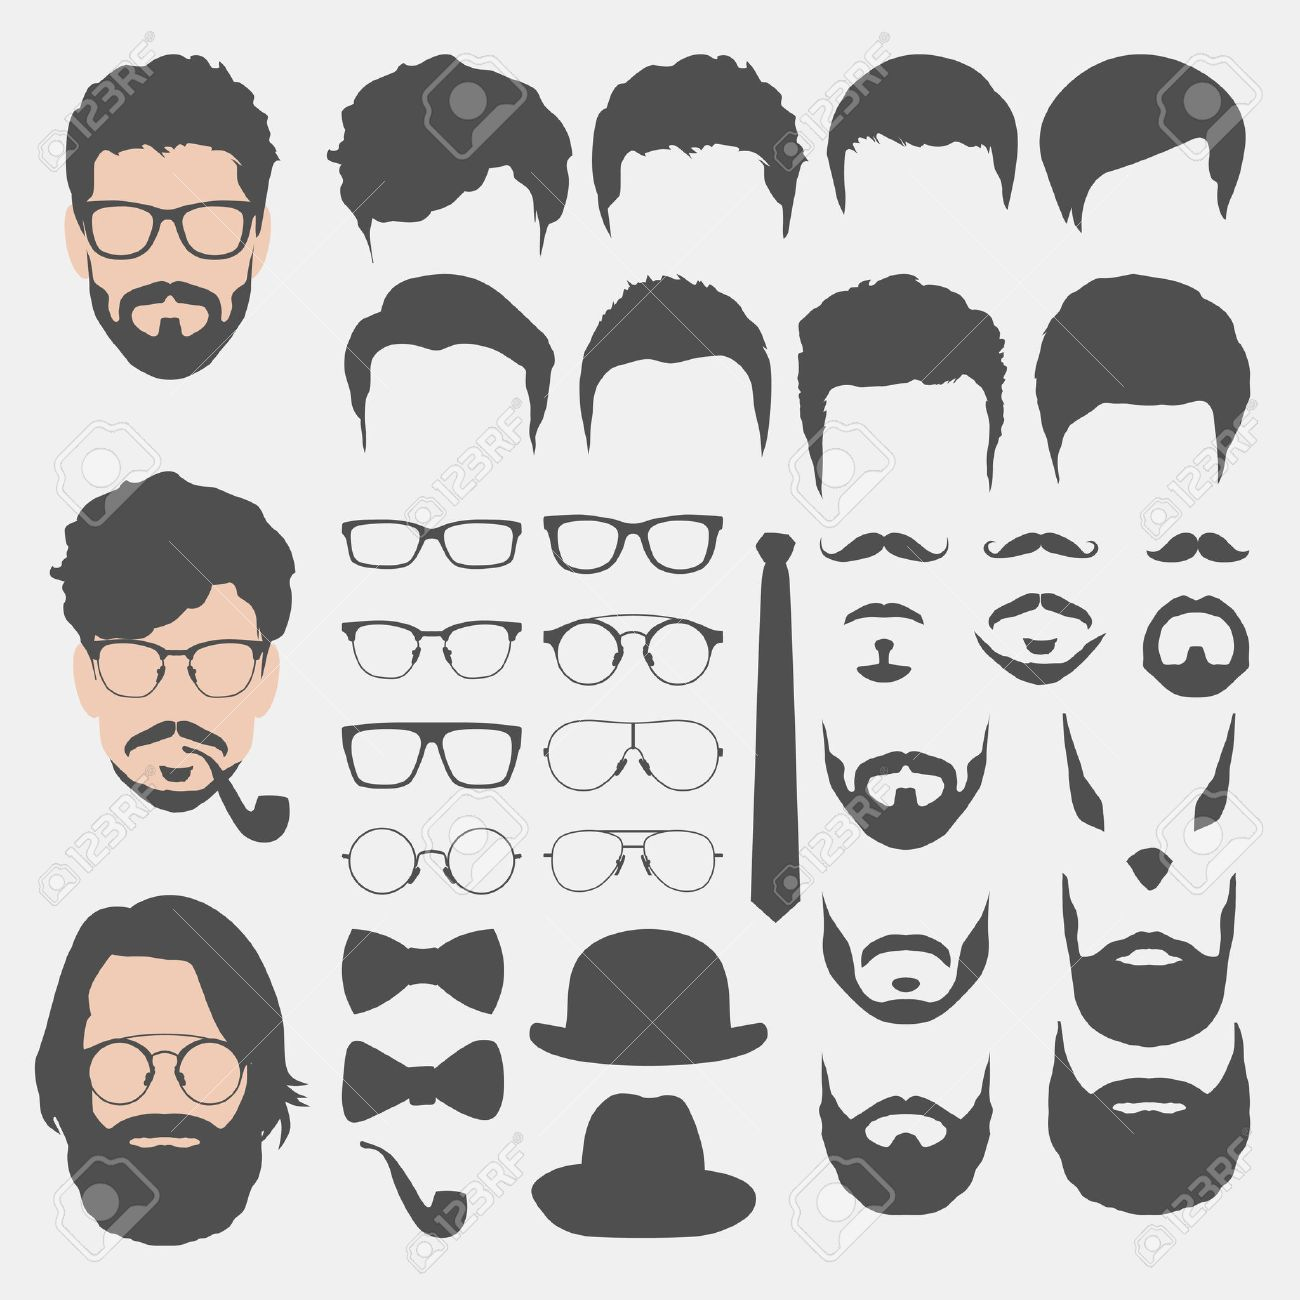 create your own hipster avatar flat style